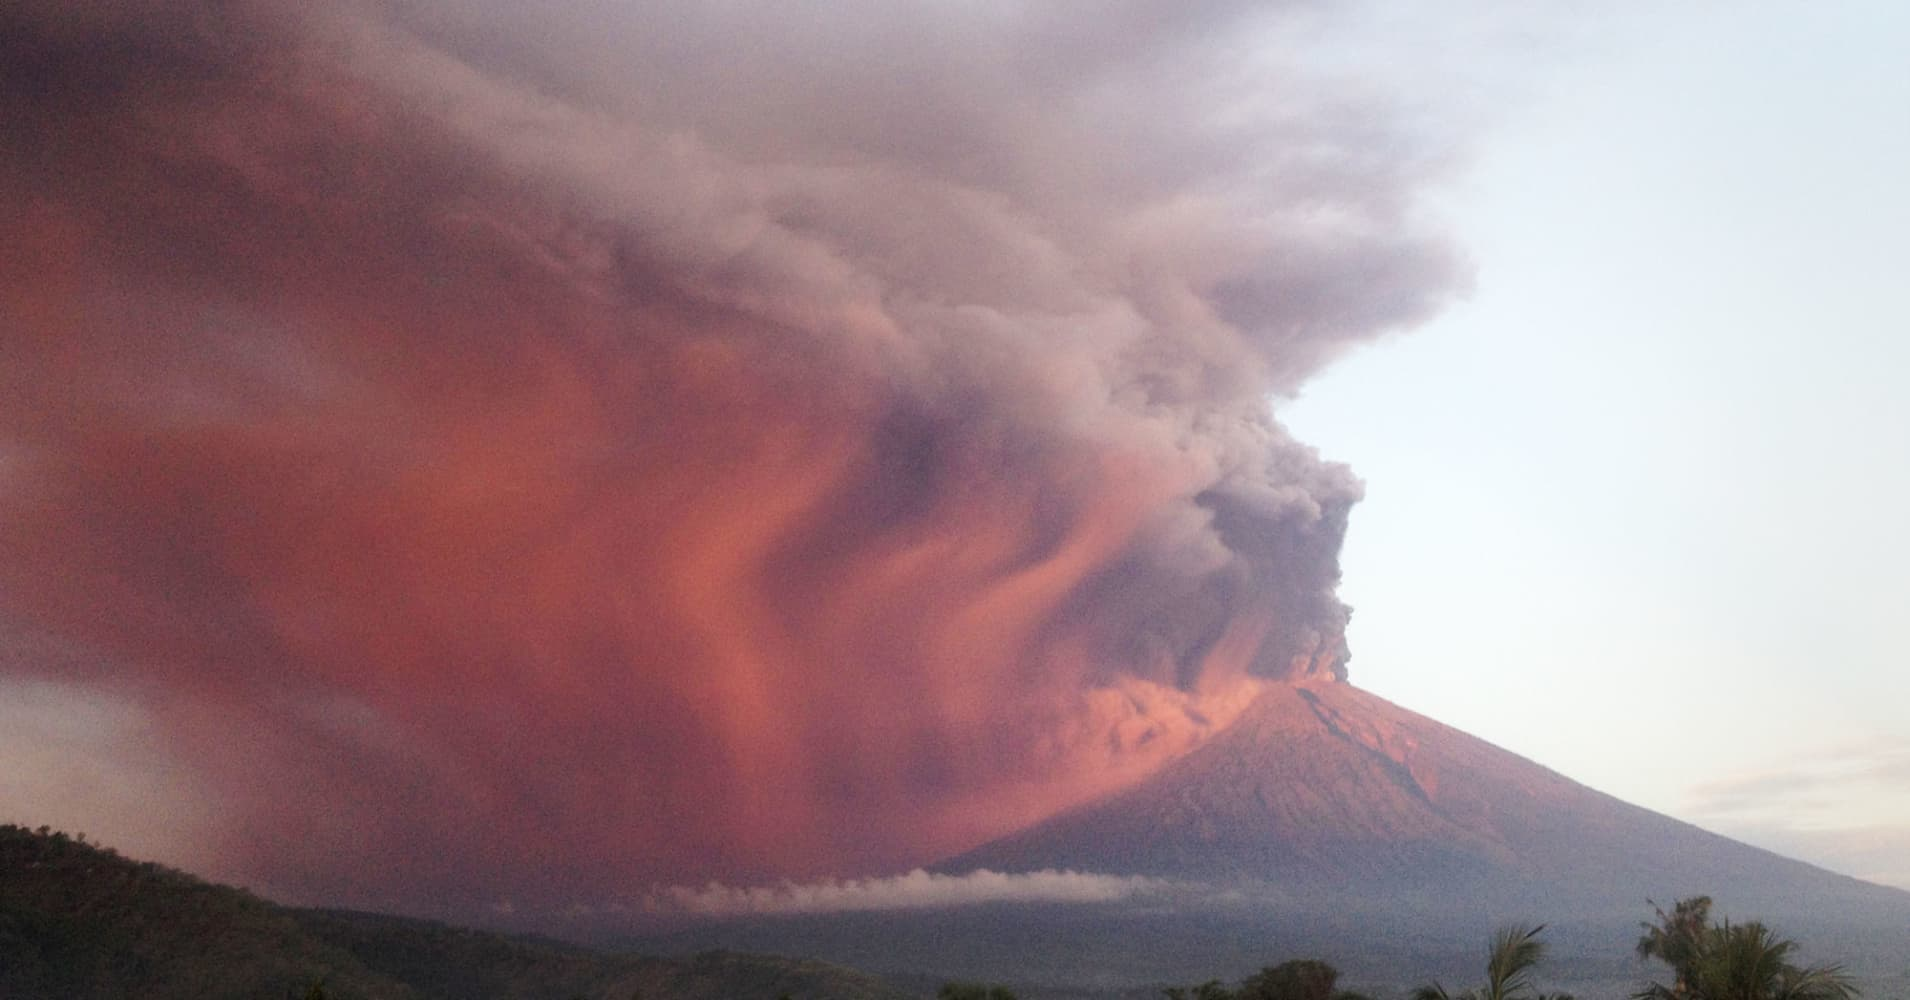 Indonesia's Mount Agung volcano erupts as seen from Amed, Karangasem, Bali, Indonesia November 26, 2017.